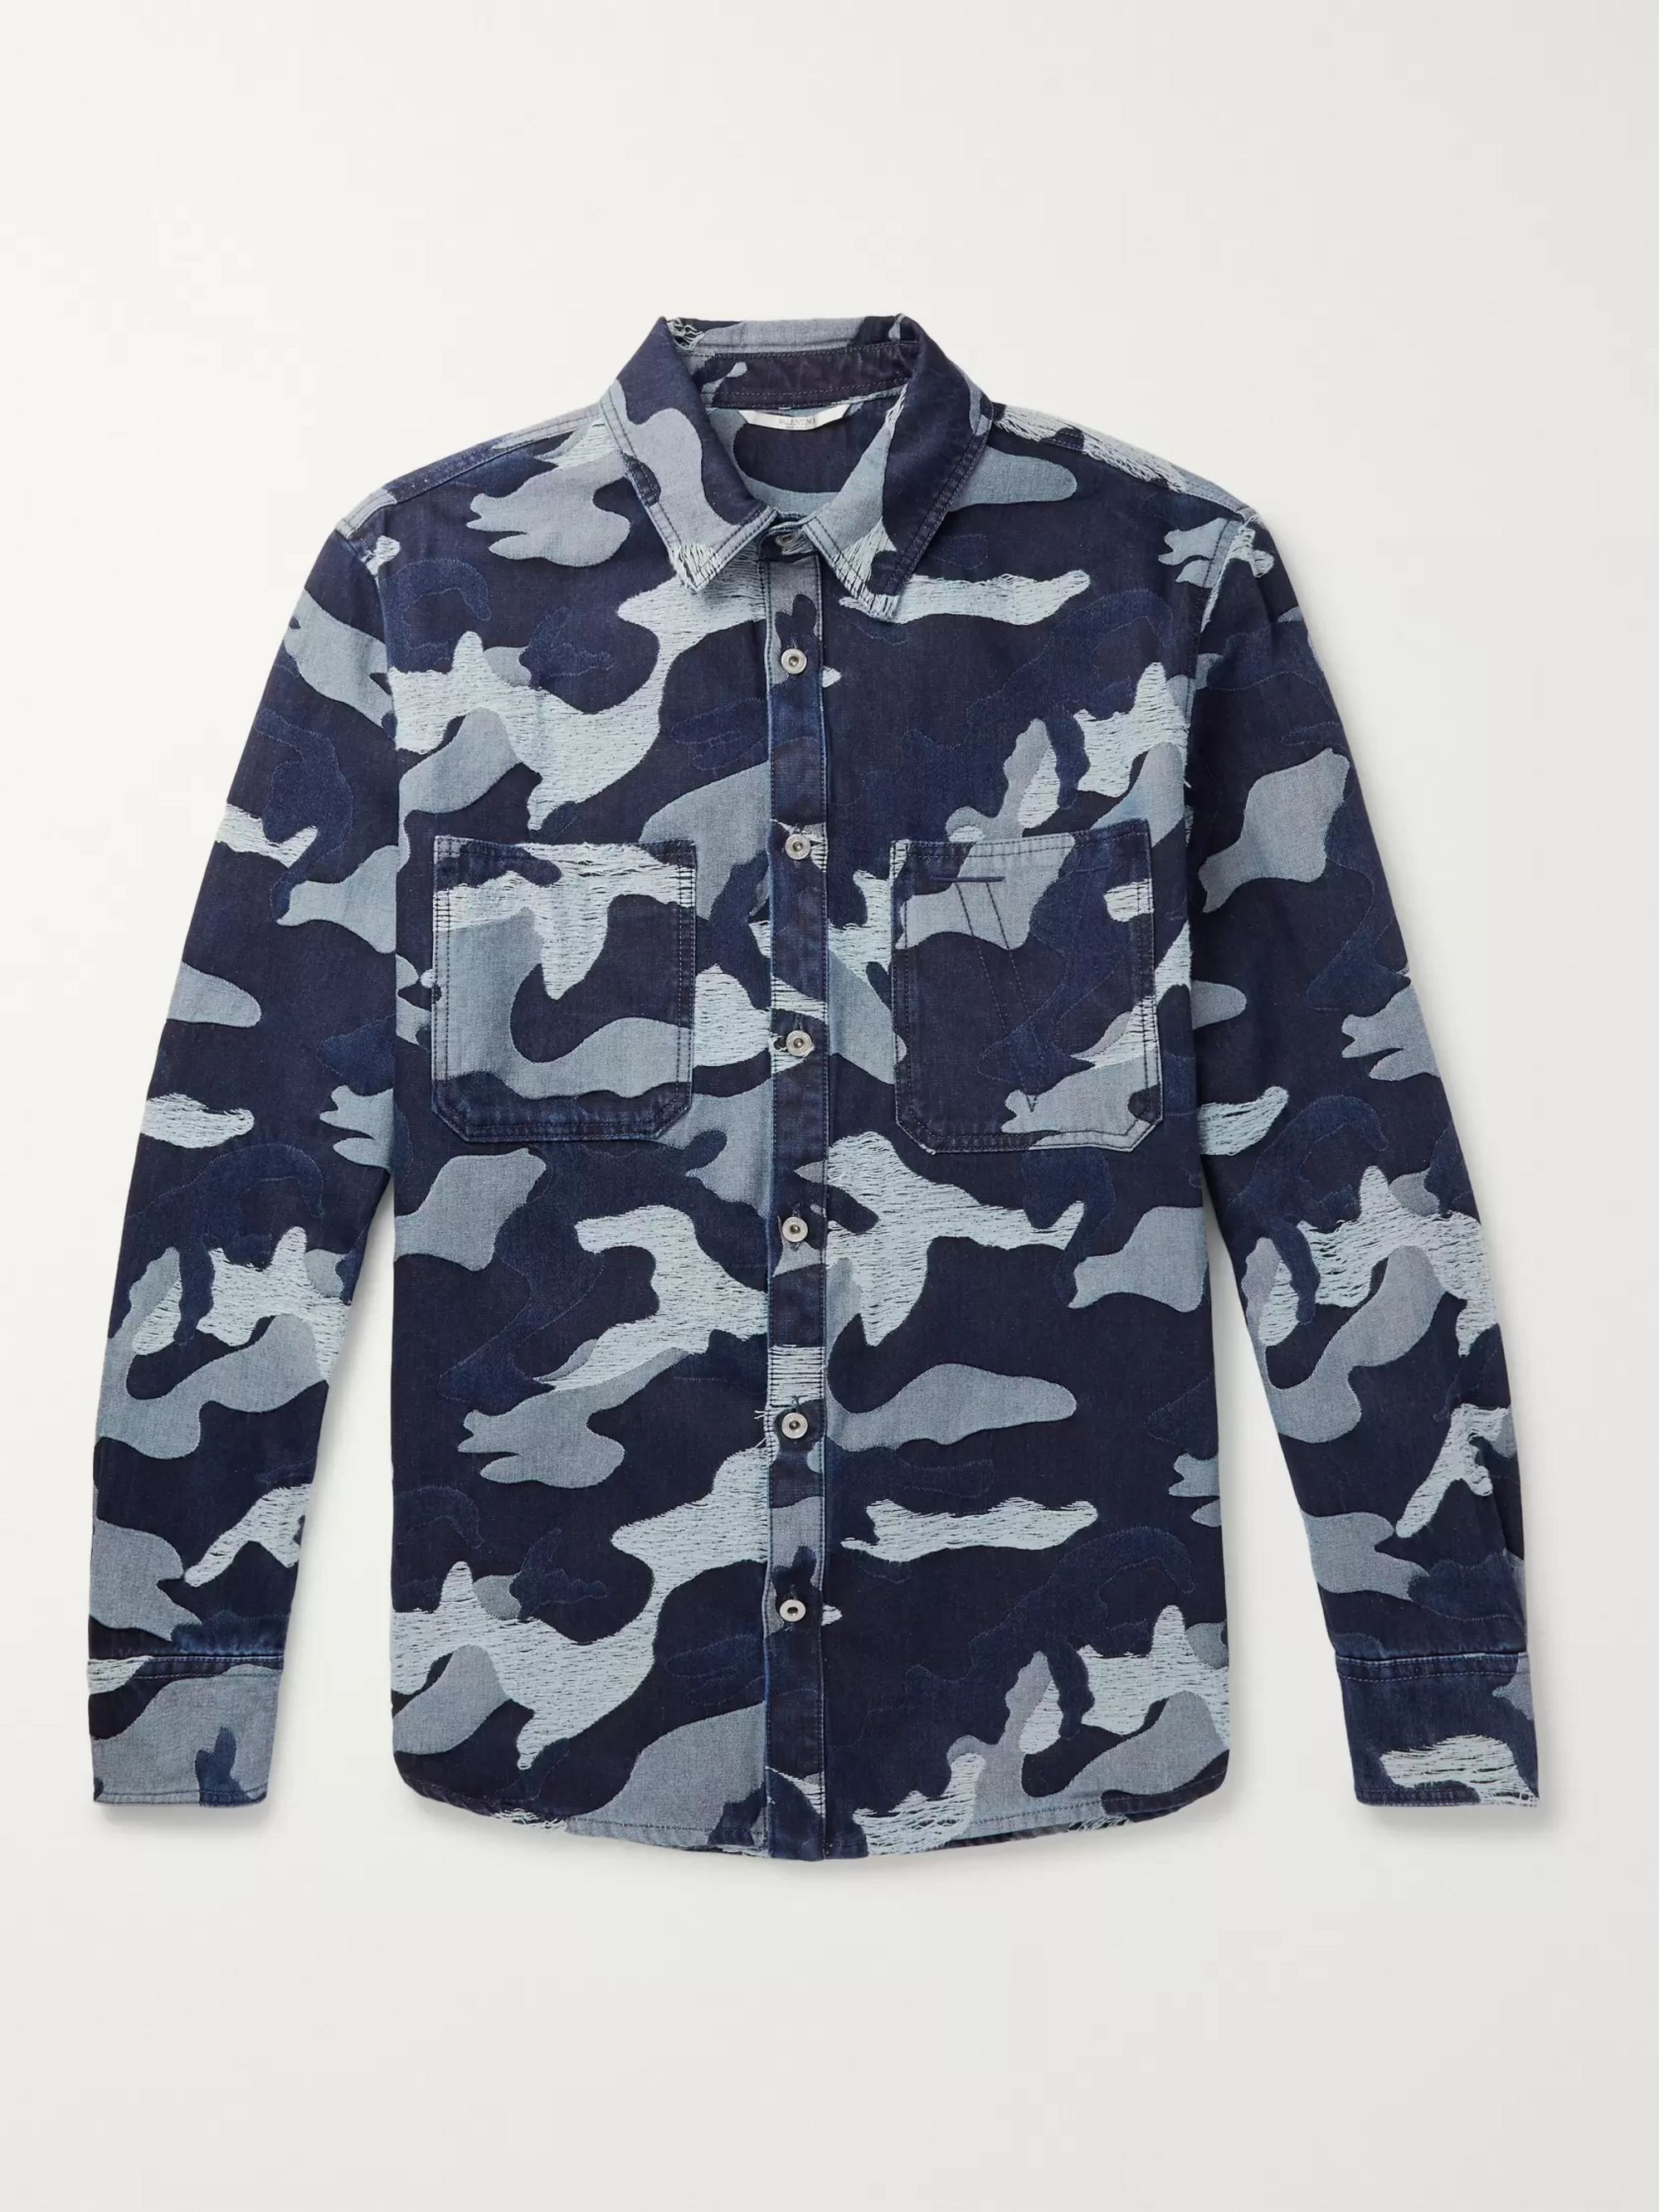 Valentino Distressed Camouflage-Jacquard Denim Overshirt